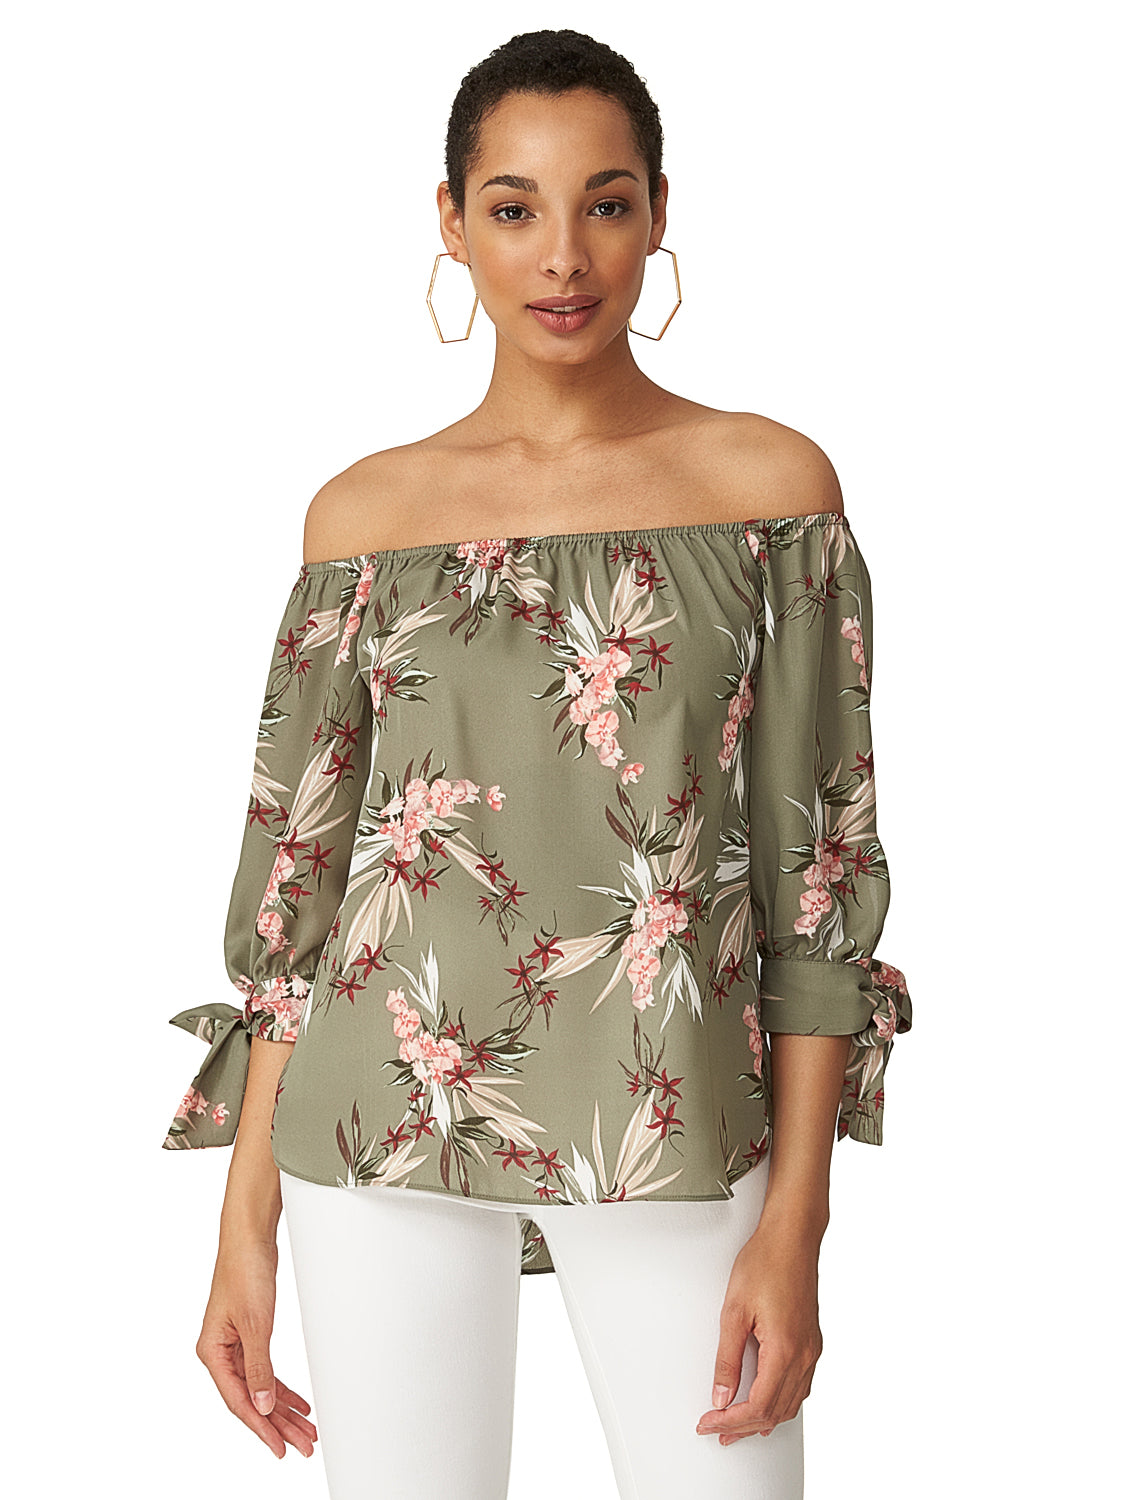 842f29c4d93e5 Off-The-Shoulder Printed Top